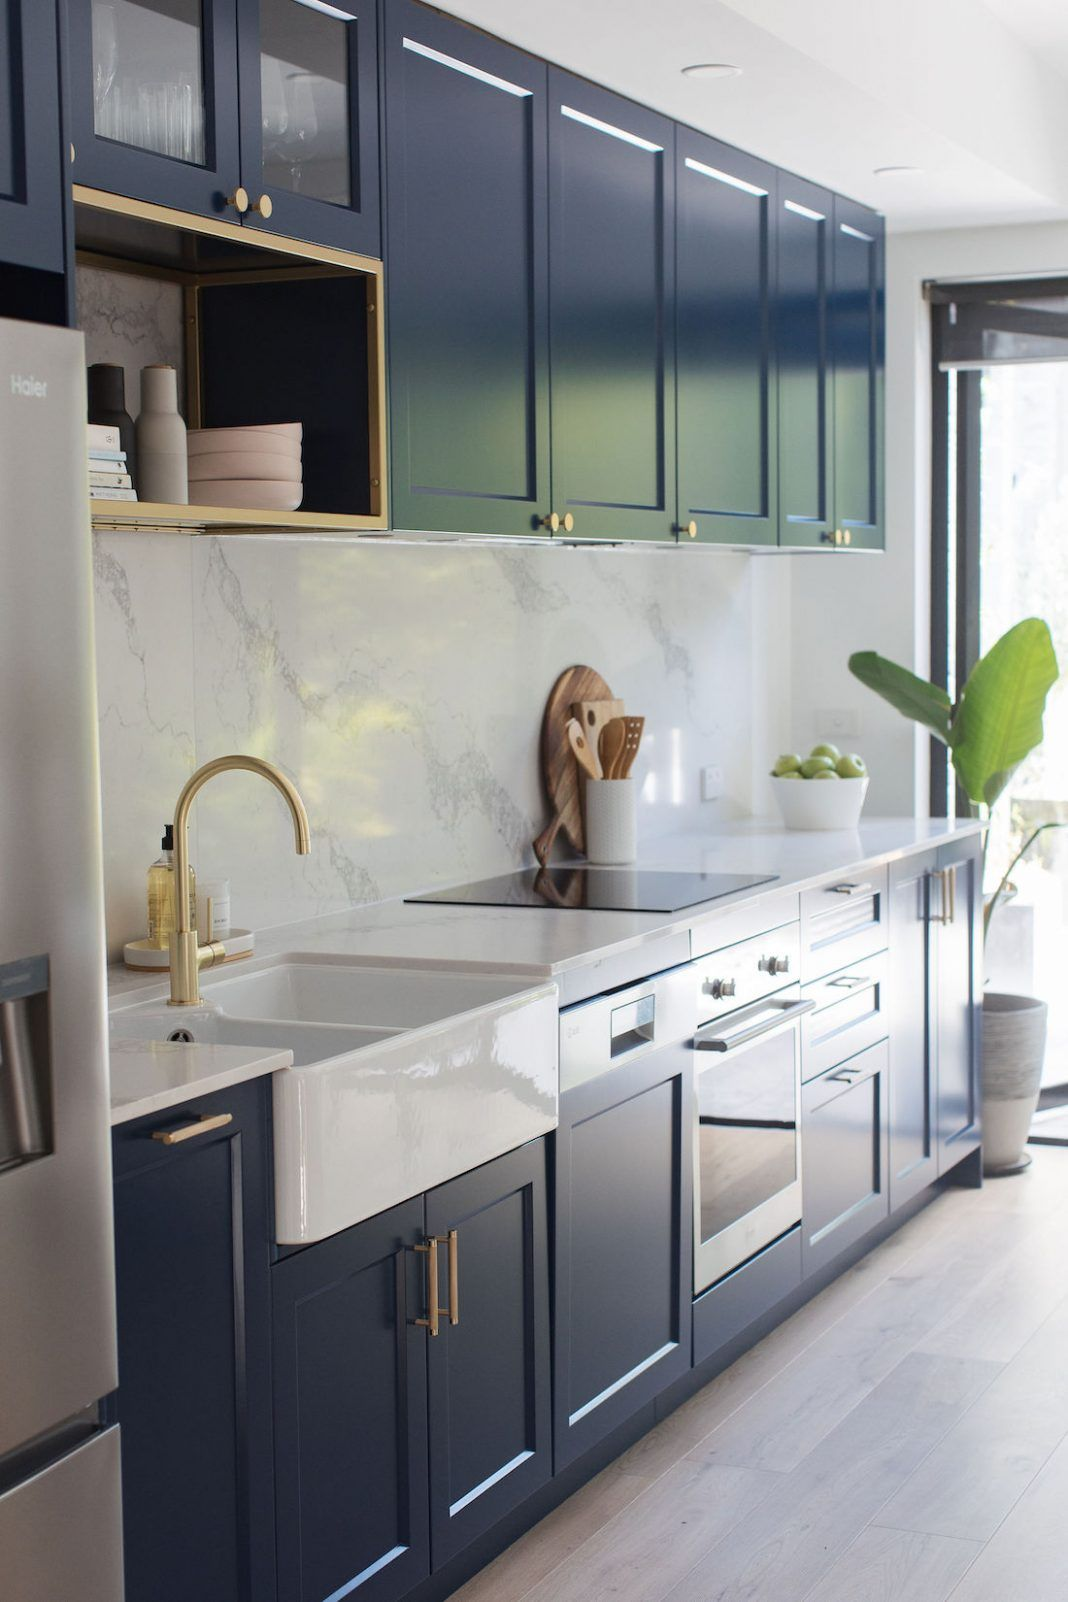 Navy Blue Kitchen With Luxe Brass Accents And Marble Look Benchtop In 2020 Navy Blue Kitchen Kitchen Design Navy Kitchen Cabinets